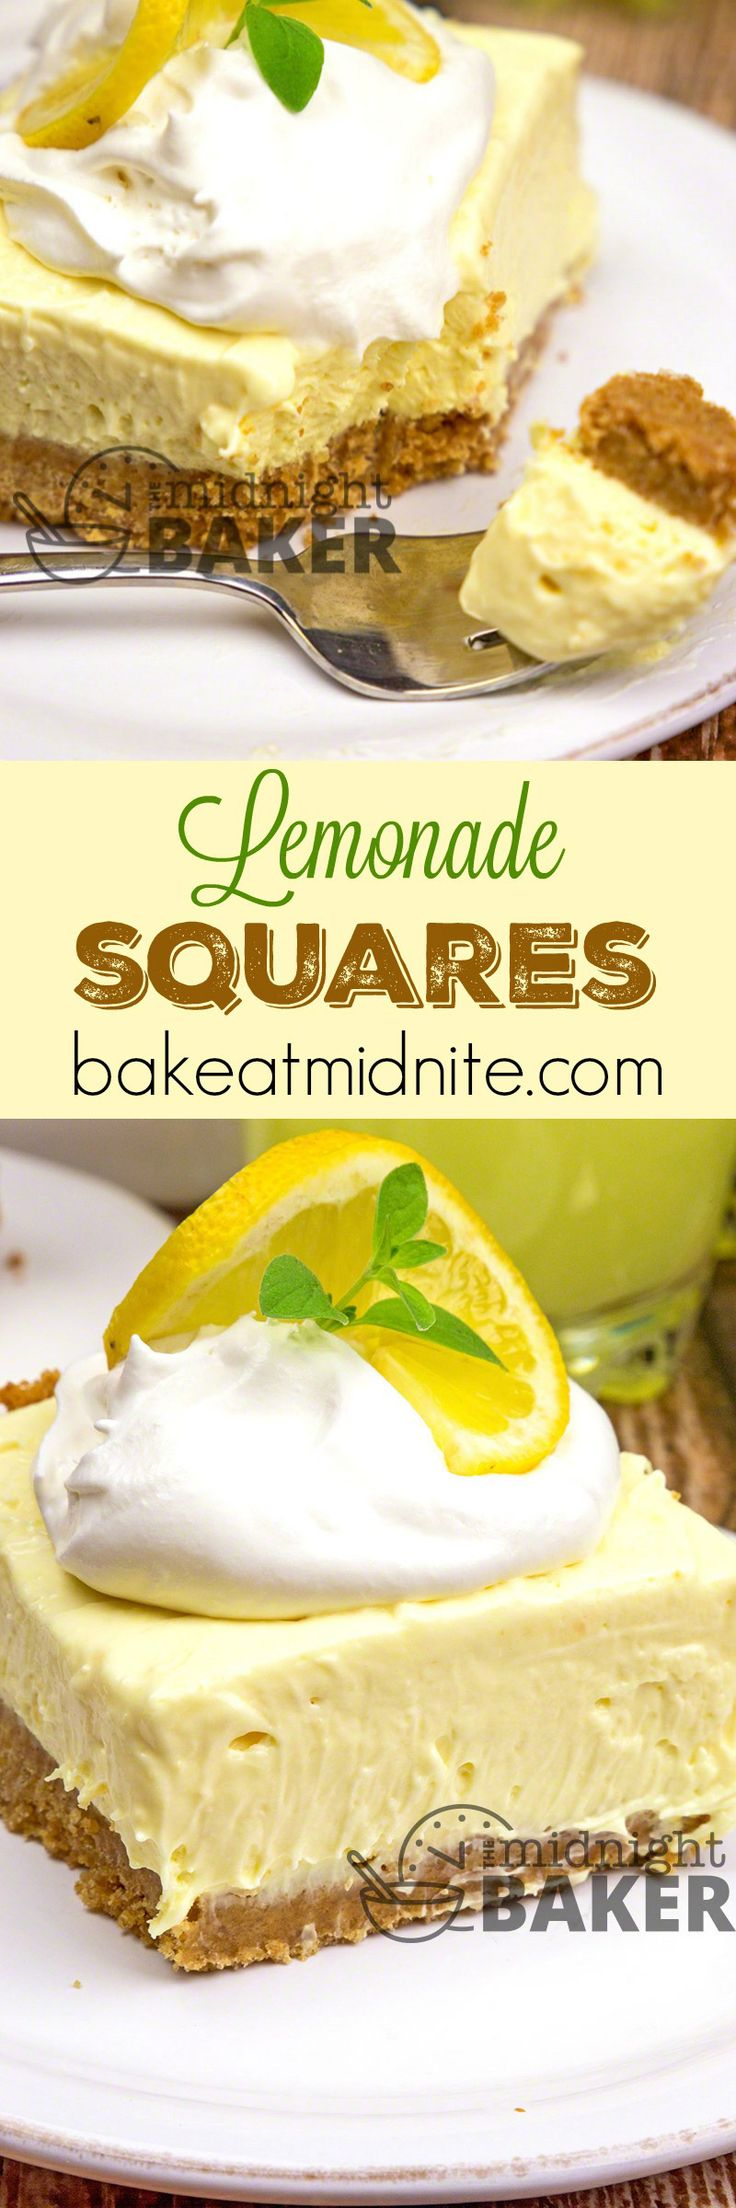 These lemonade squares are bursting with sunny lemon flavor. Very refreshing…